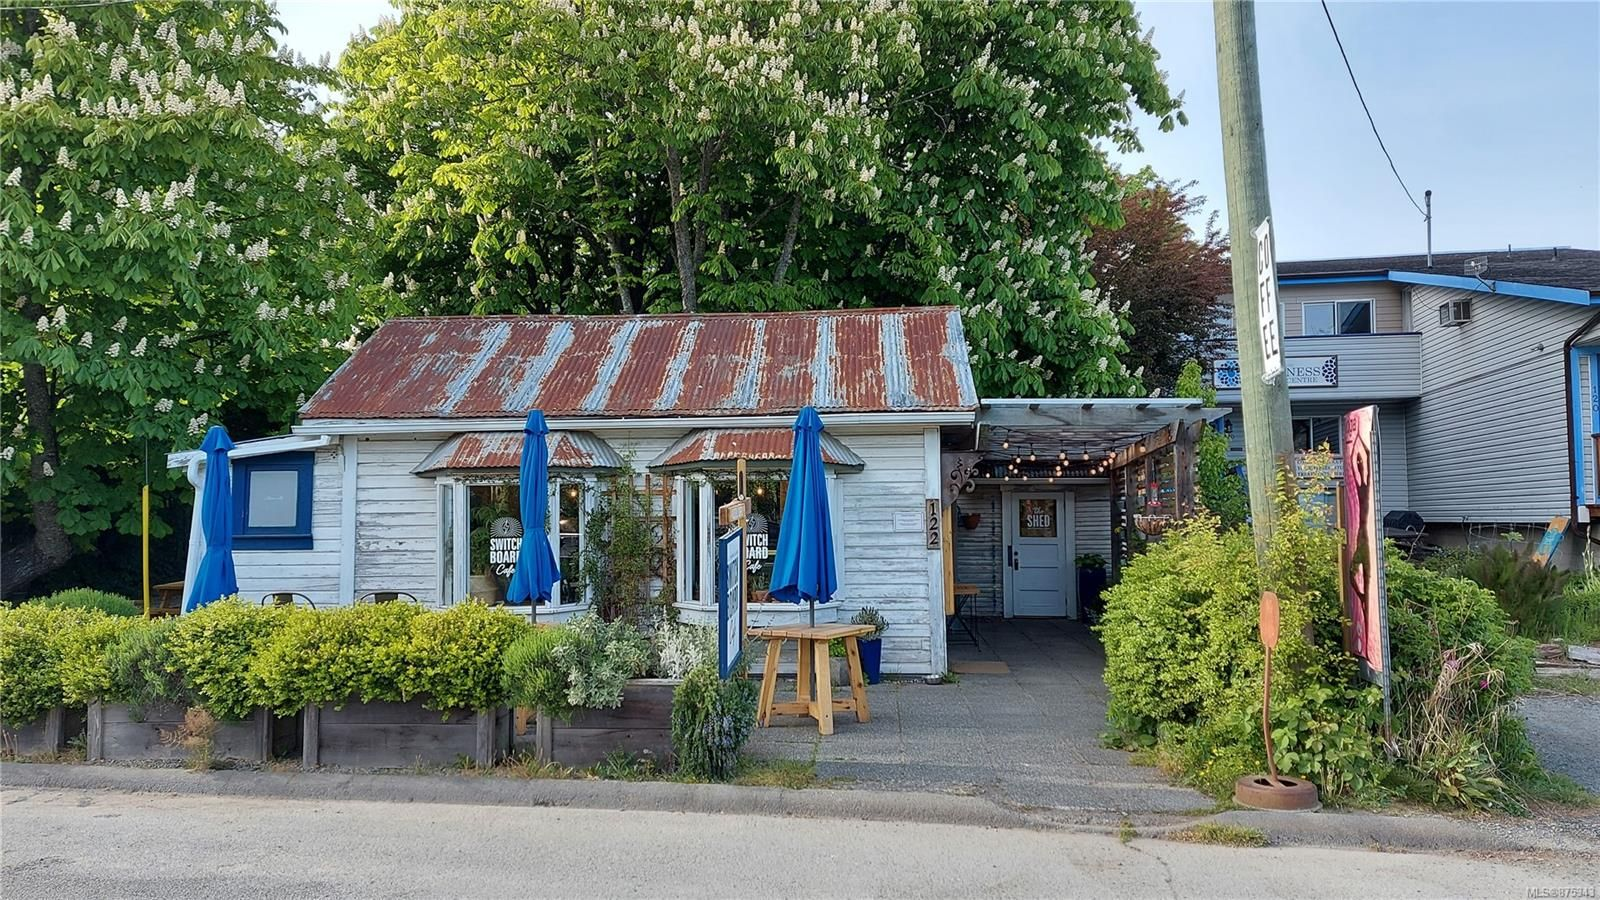 Main Photo: 122 Hereford St in : GI Salt Spring Mixed Use for sale (Gulf Islands)  : MLS®# 875343